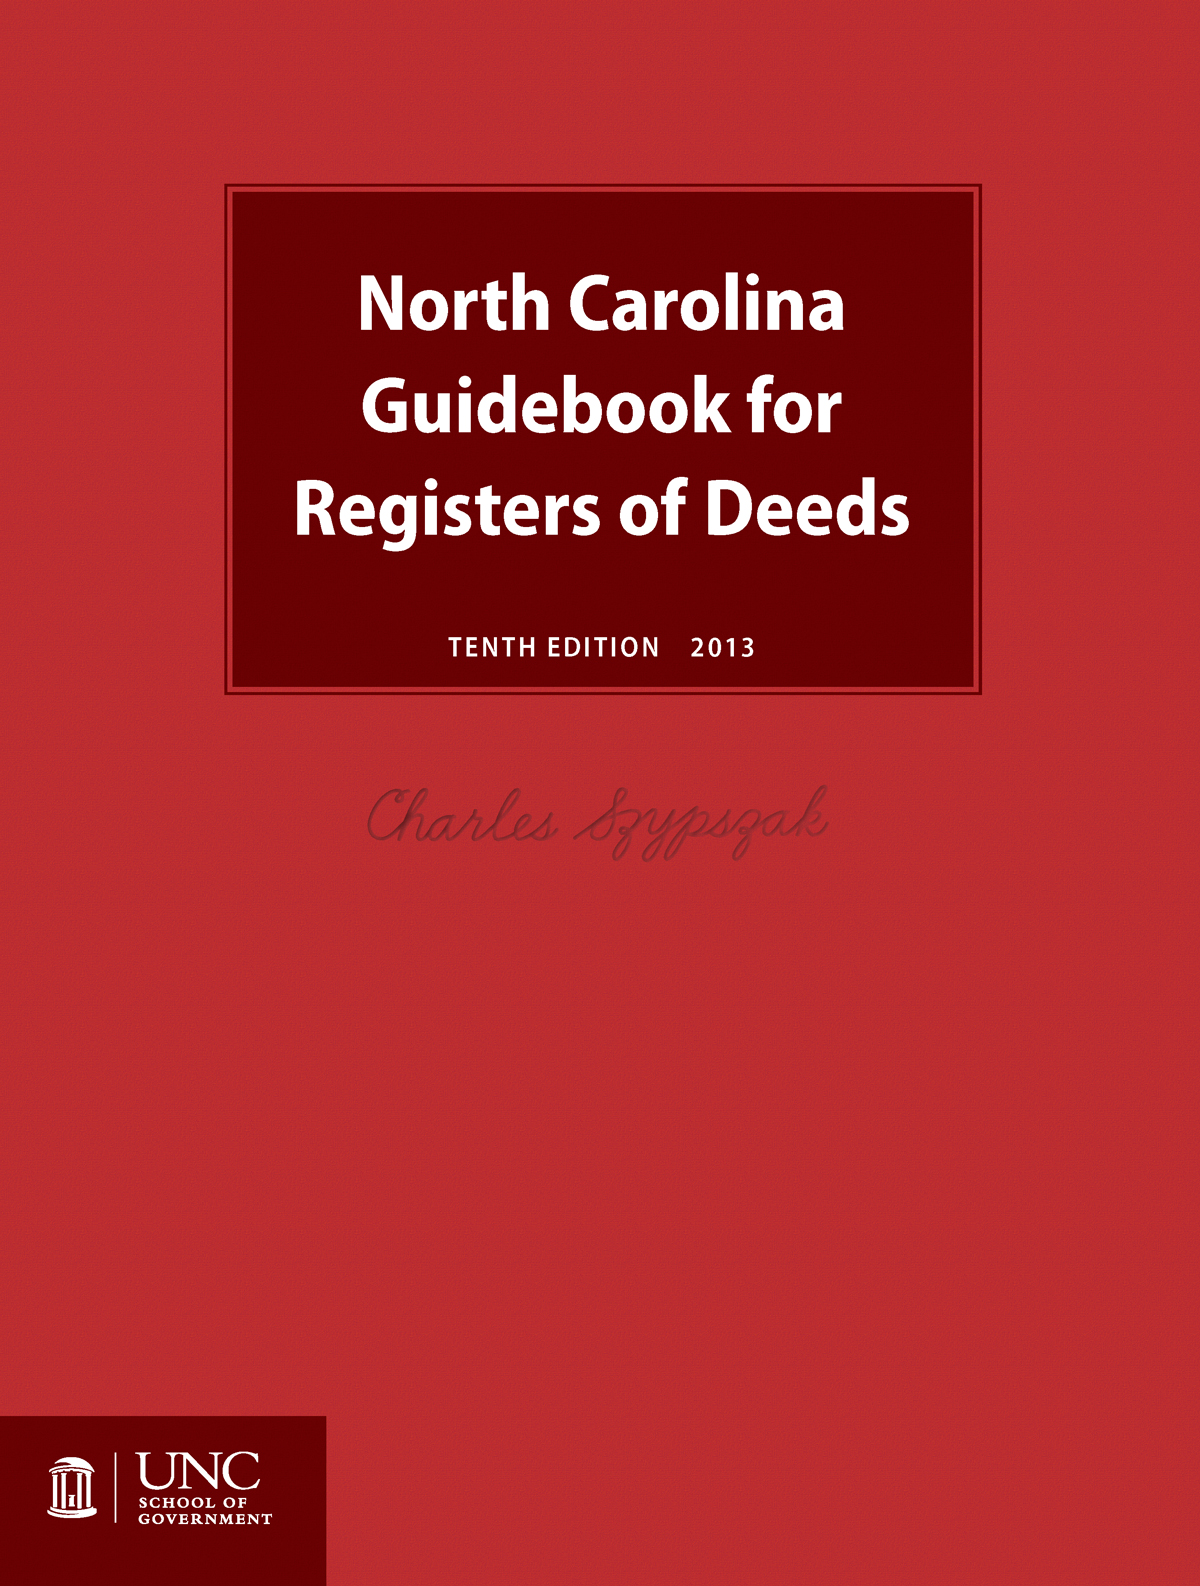 Cover image for North Carolina Guidebook for Registers of Deeds, Tenth Edition, 2013